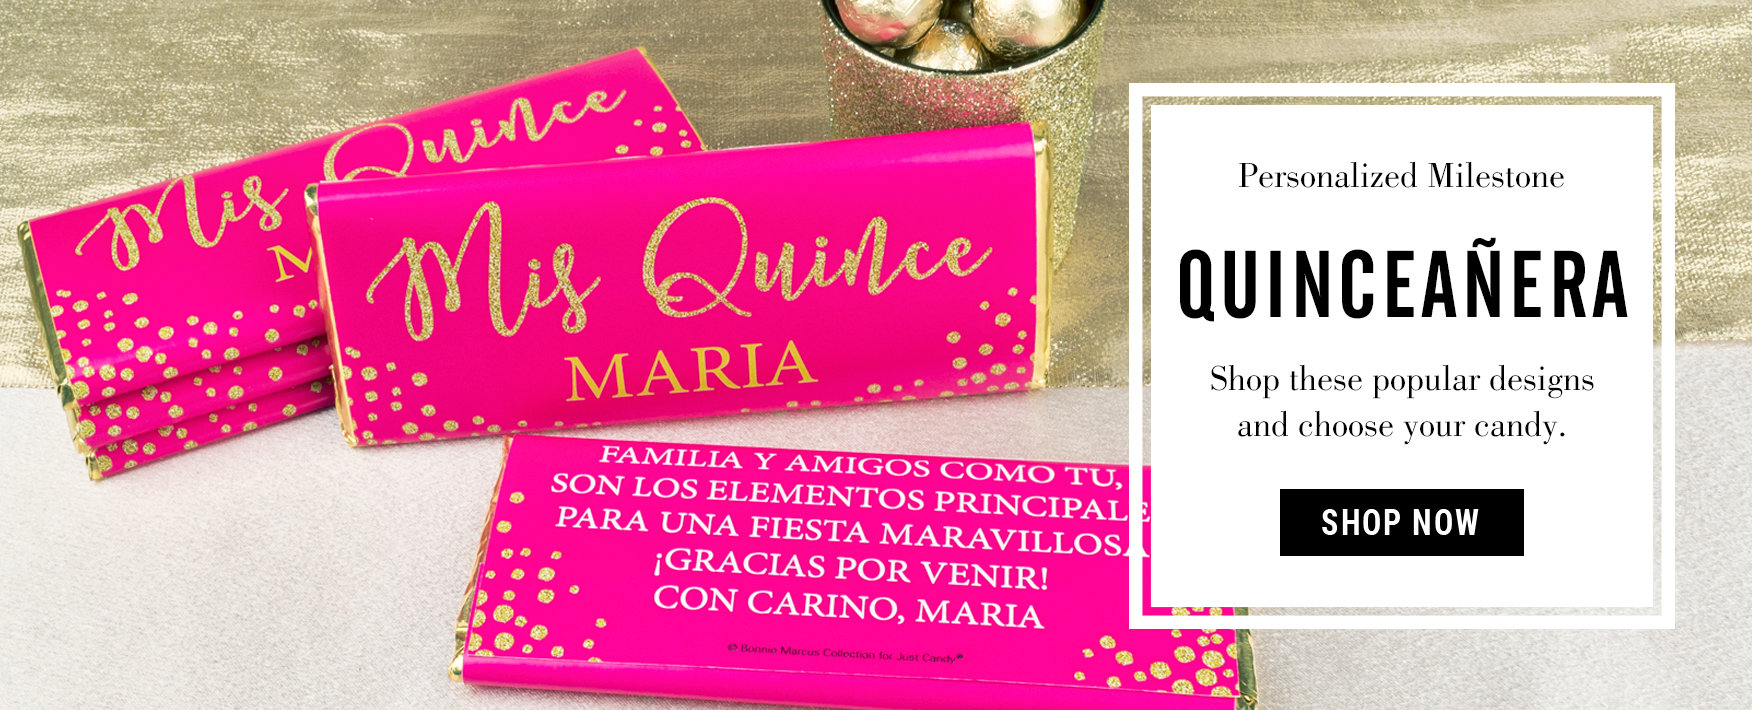 Quinceanera Party Favors Fiesta De Cumpleanos Latin 15th Birthday